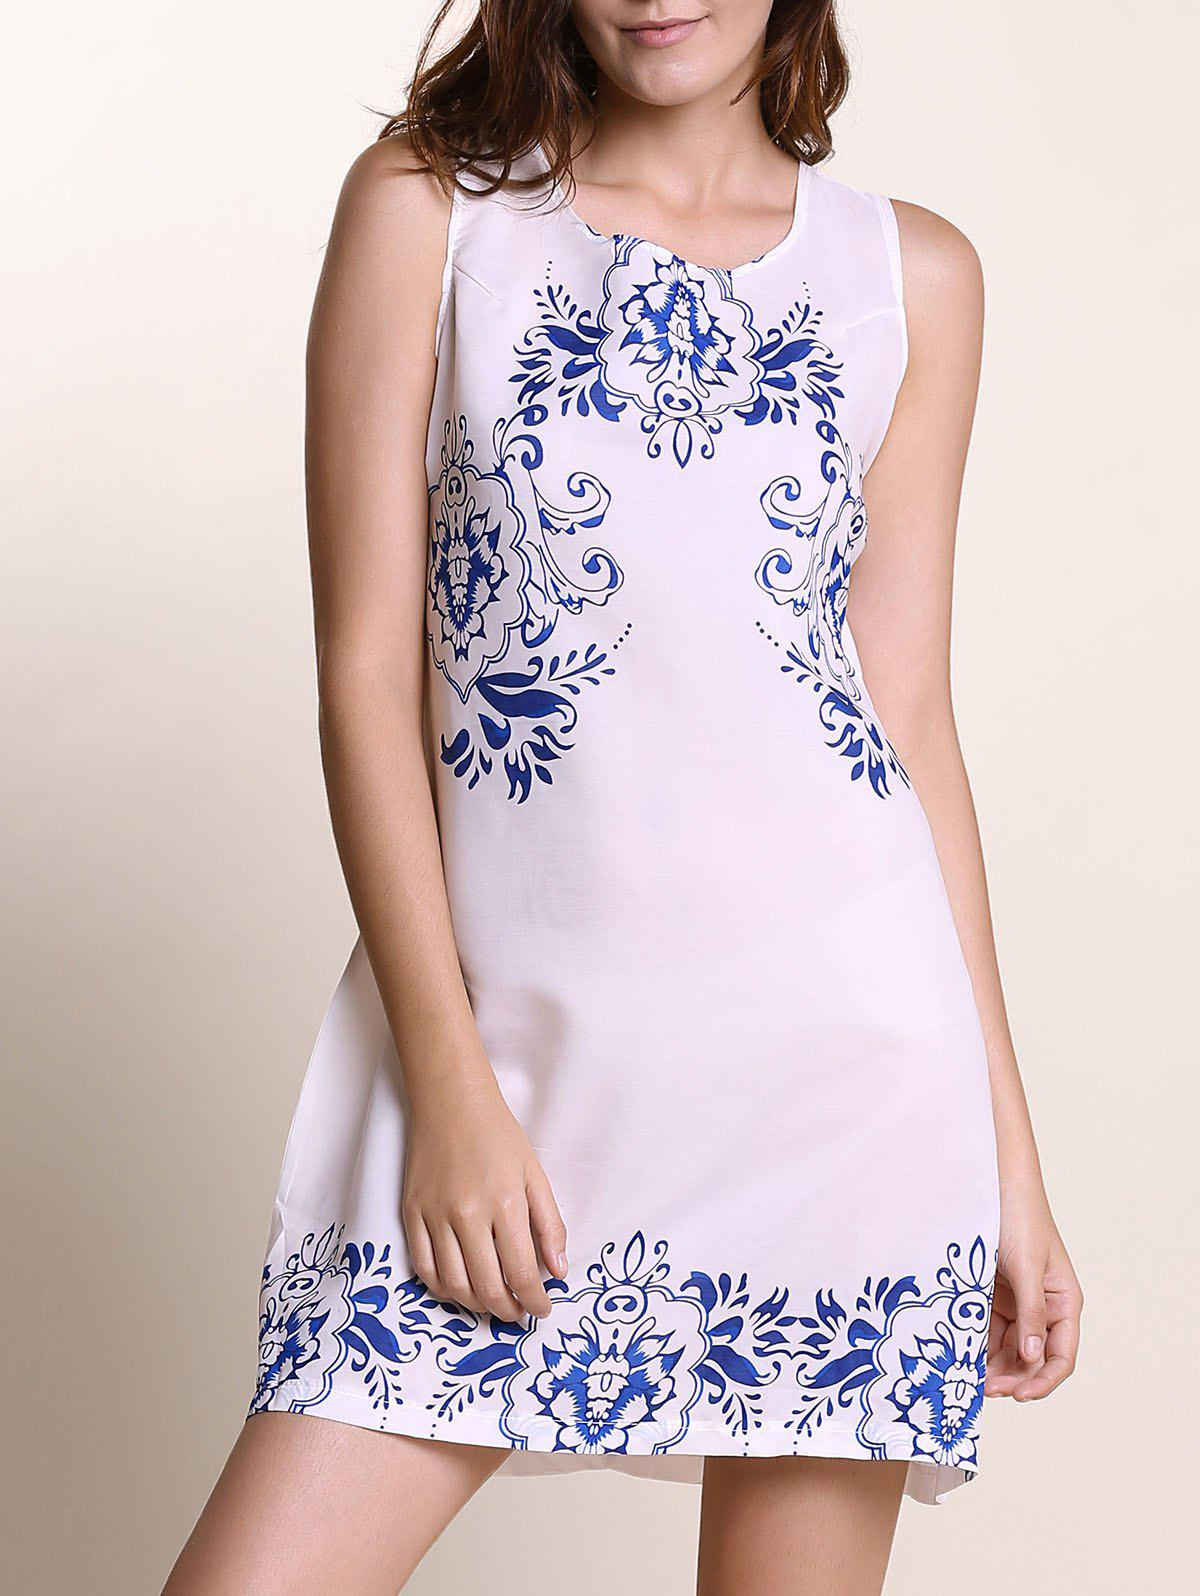 Ethnic Style Women's Round Neck Sleeveless Print Shift Dress - WHITE S